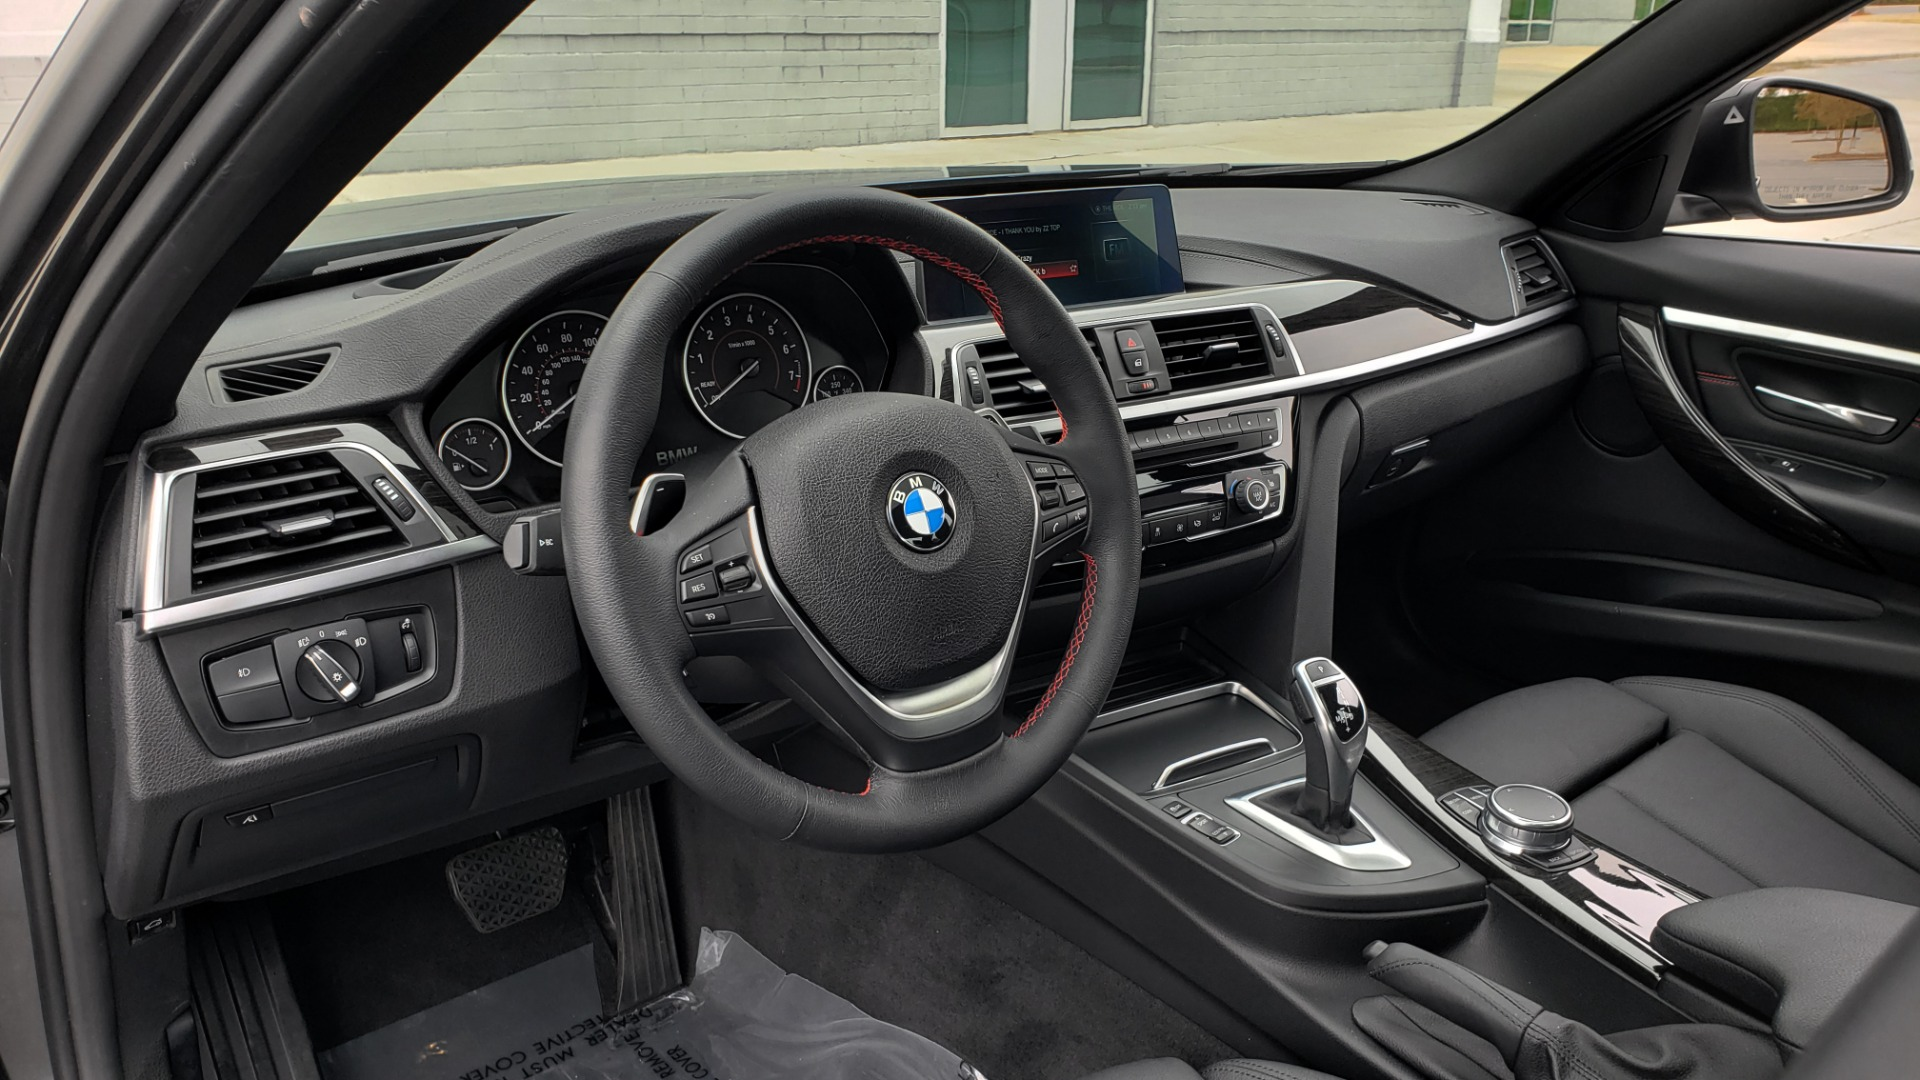 Used 2018 BMW 3 SERIES 330I XDRIVE PREMIUM / CONV PKG NAV / BLIND SPOT / HTD STS / REARVIEW for sale $22,695 at Formula Imports in Charlotte NC 28227 37